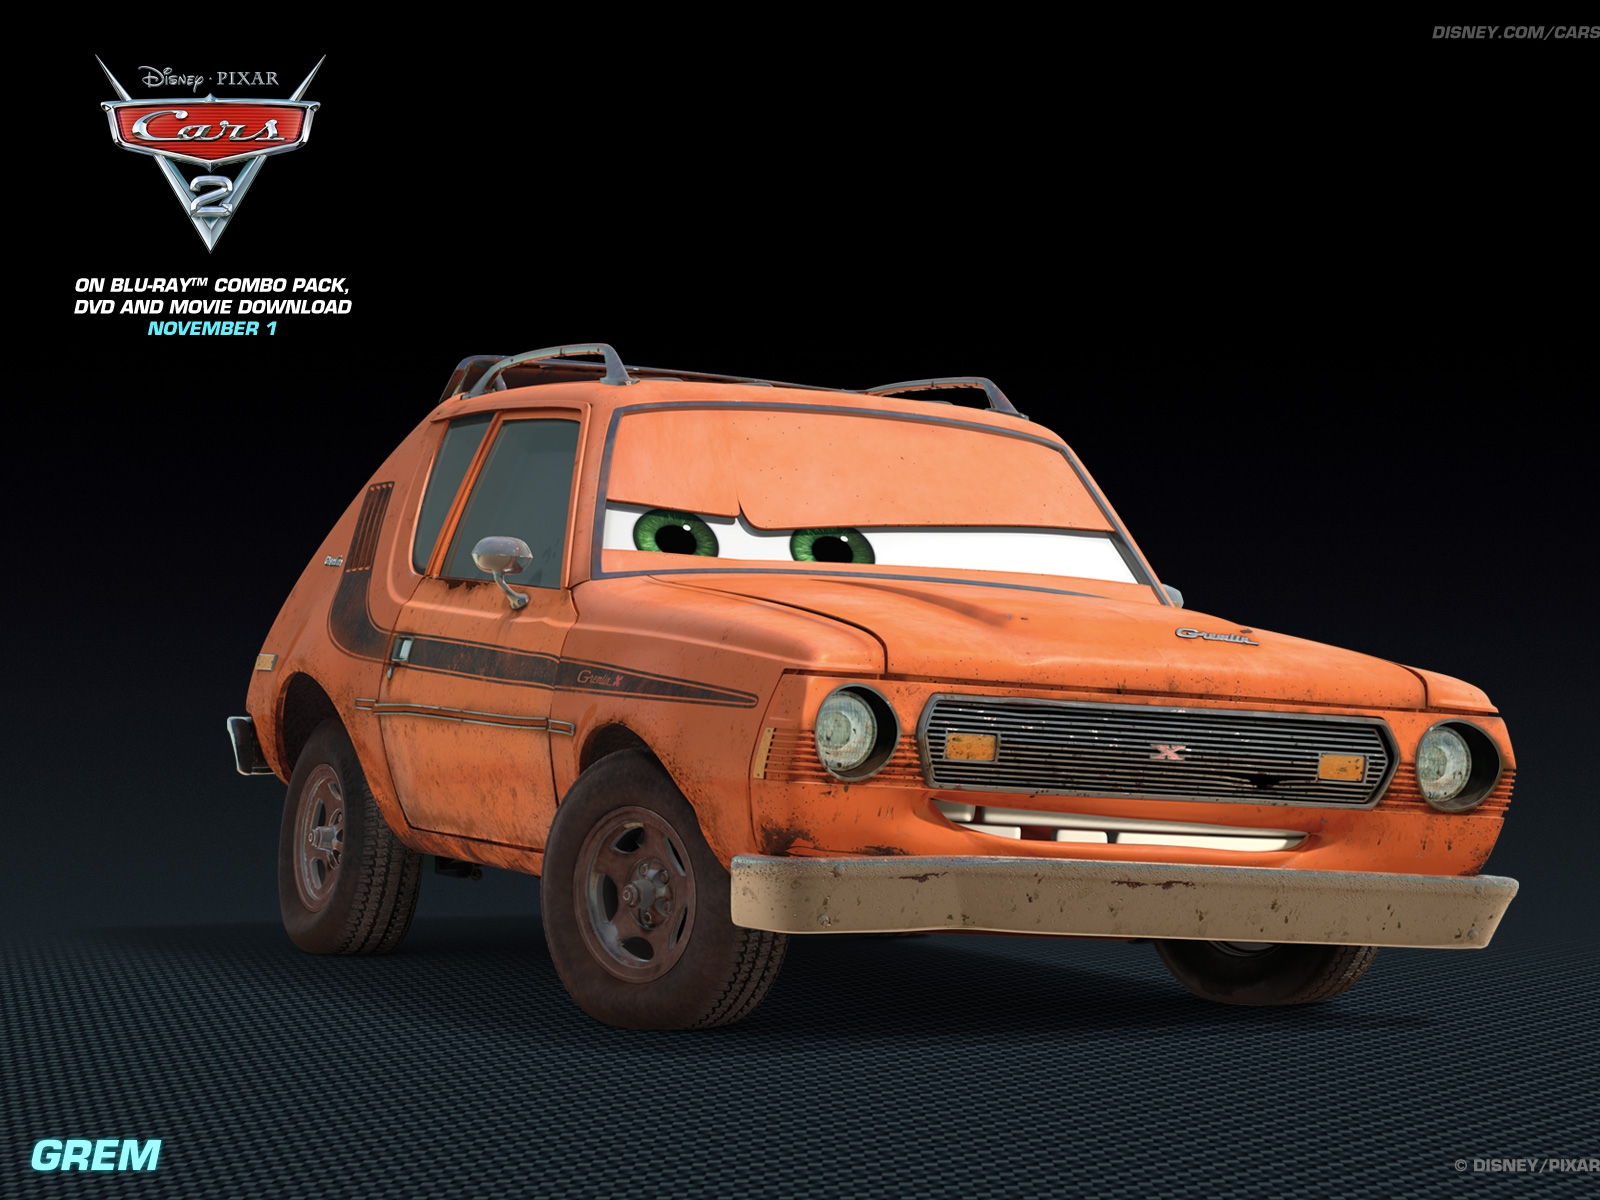 grem disney pixar cars 2 free hd wallpaper.1600 1200